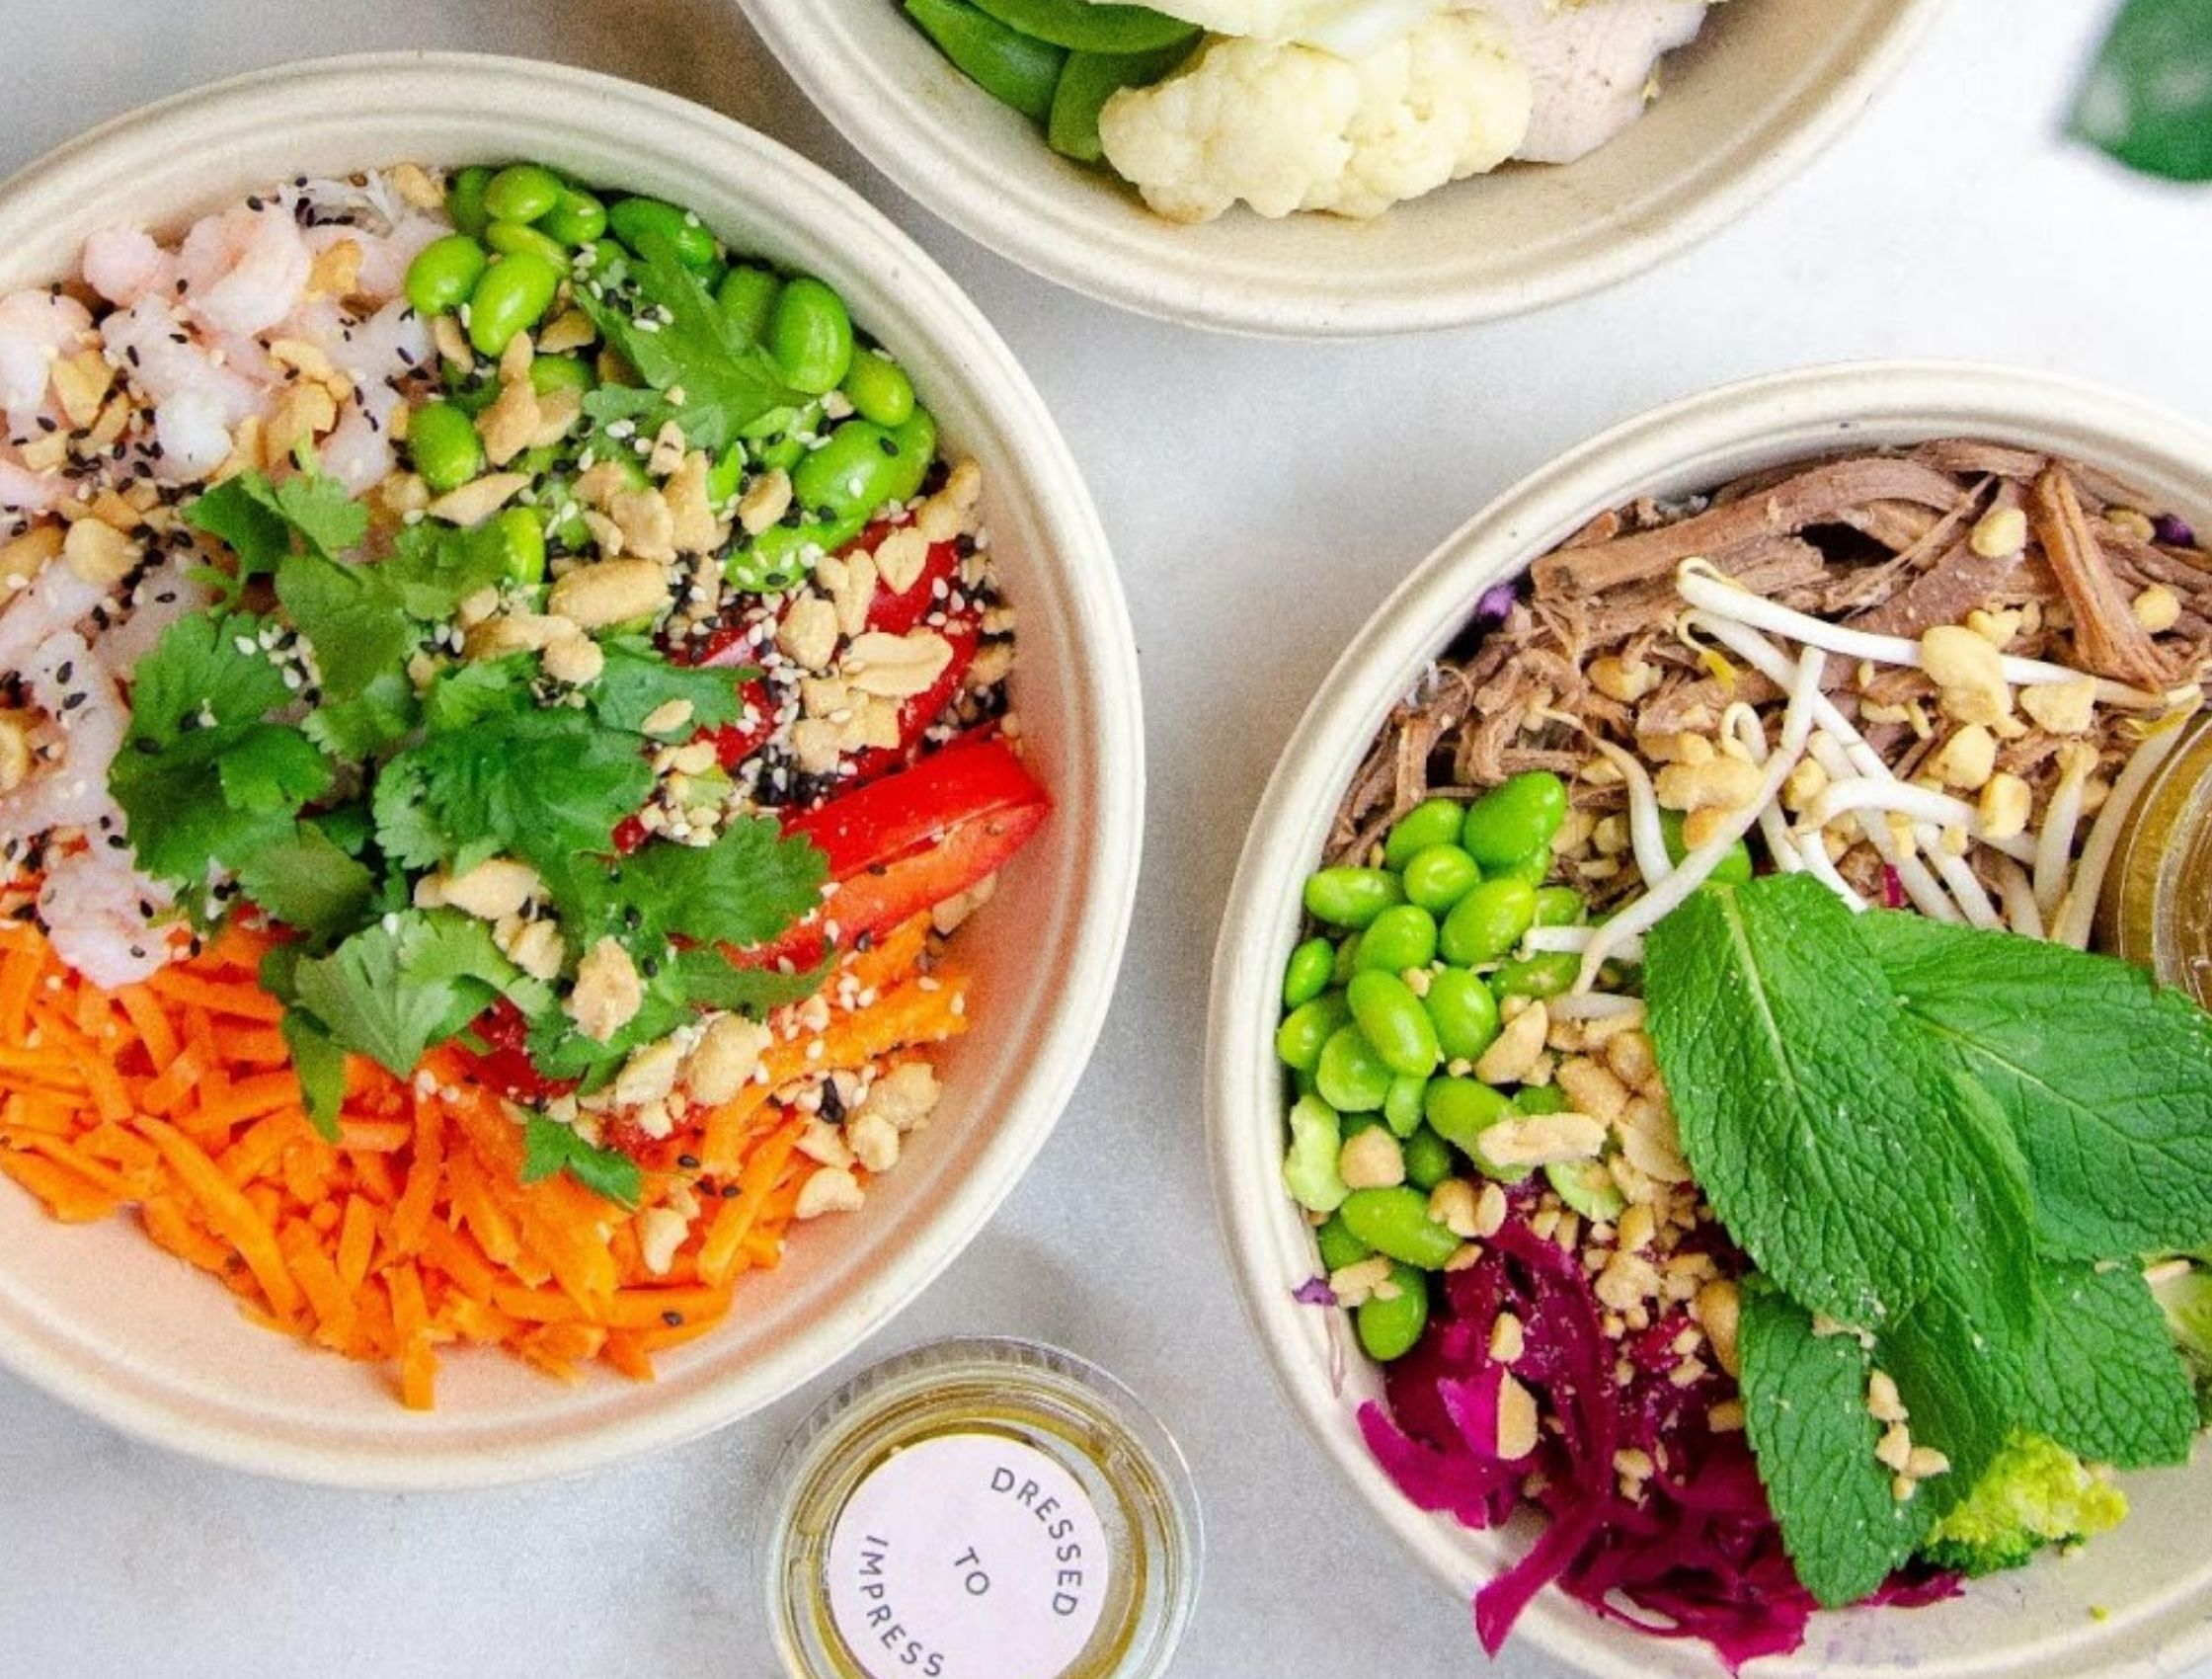 Urban Greens salad bowls with fresh nutritious ingredients